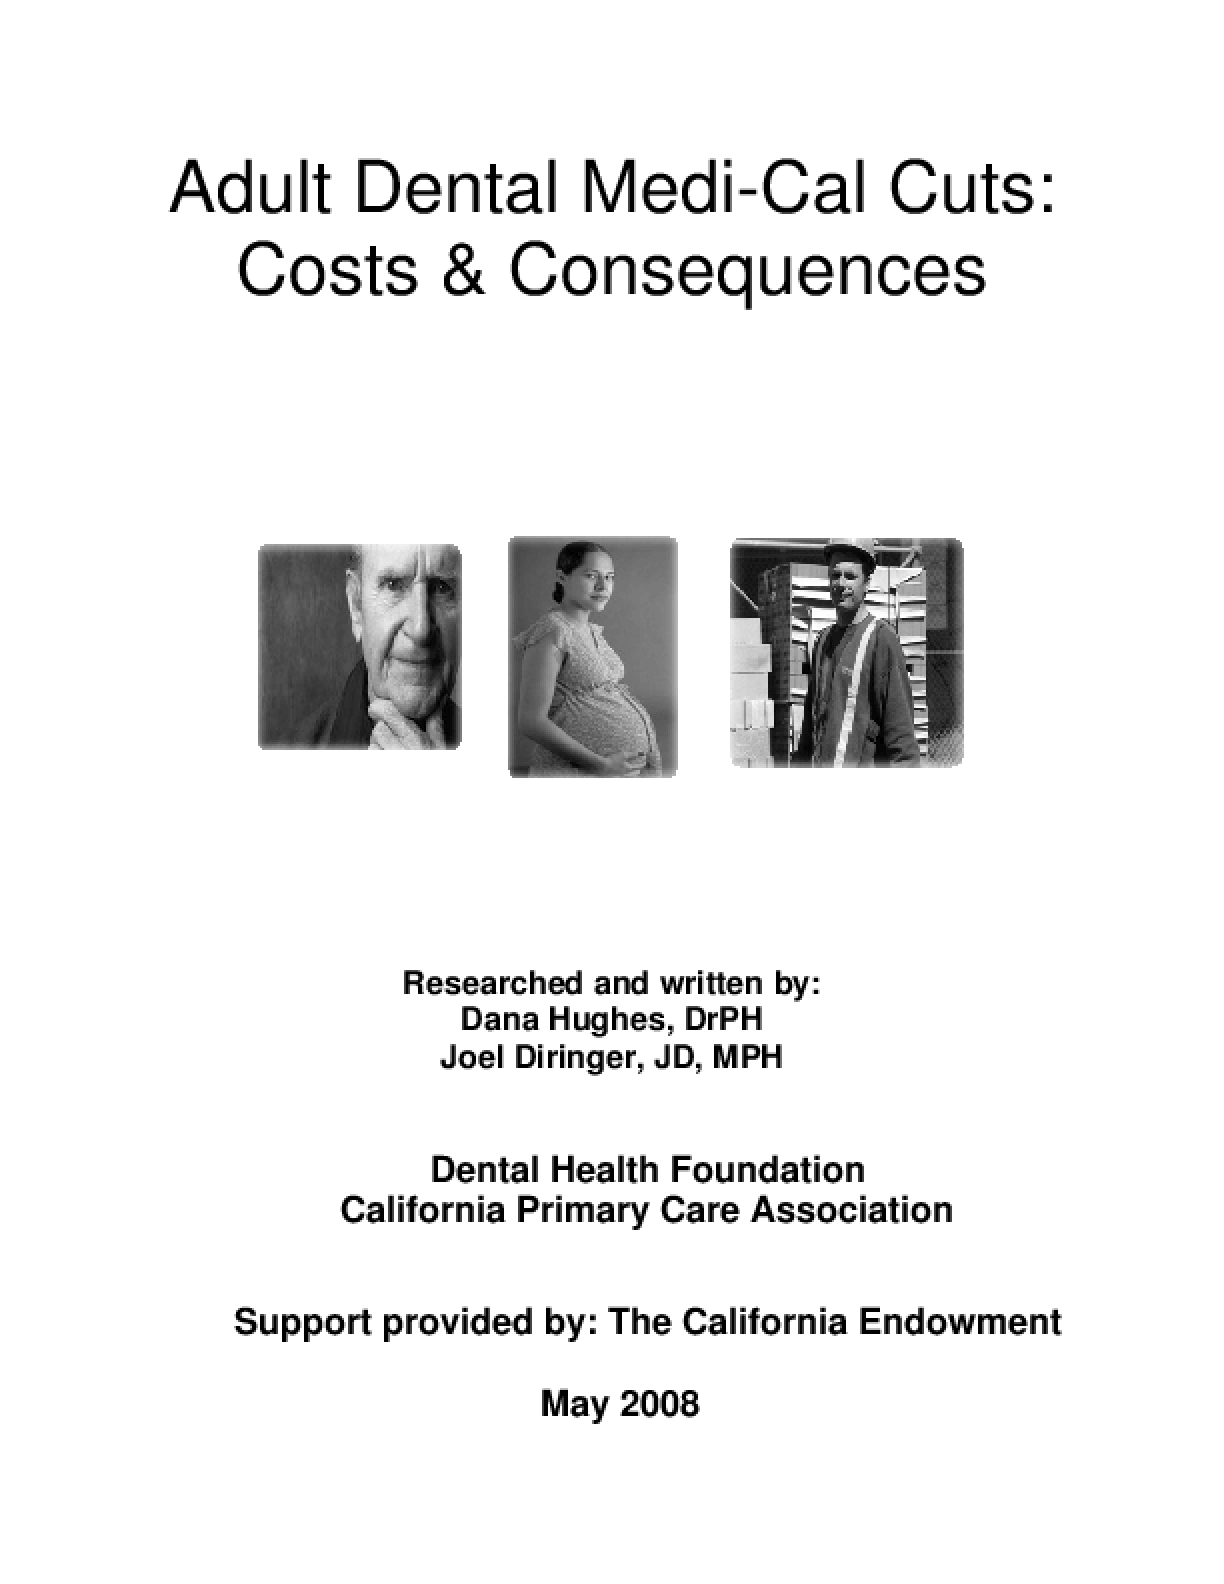 Adult Dental Medi-Cal Cuts: Costs & Consequences